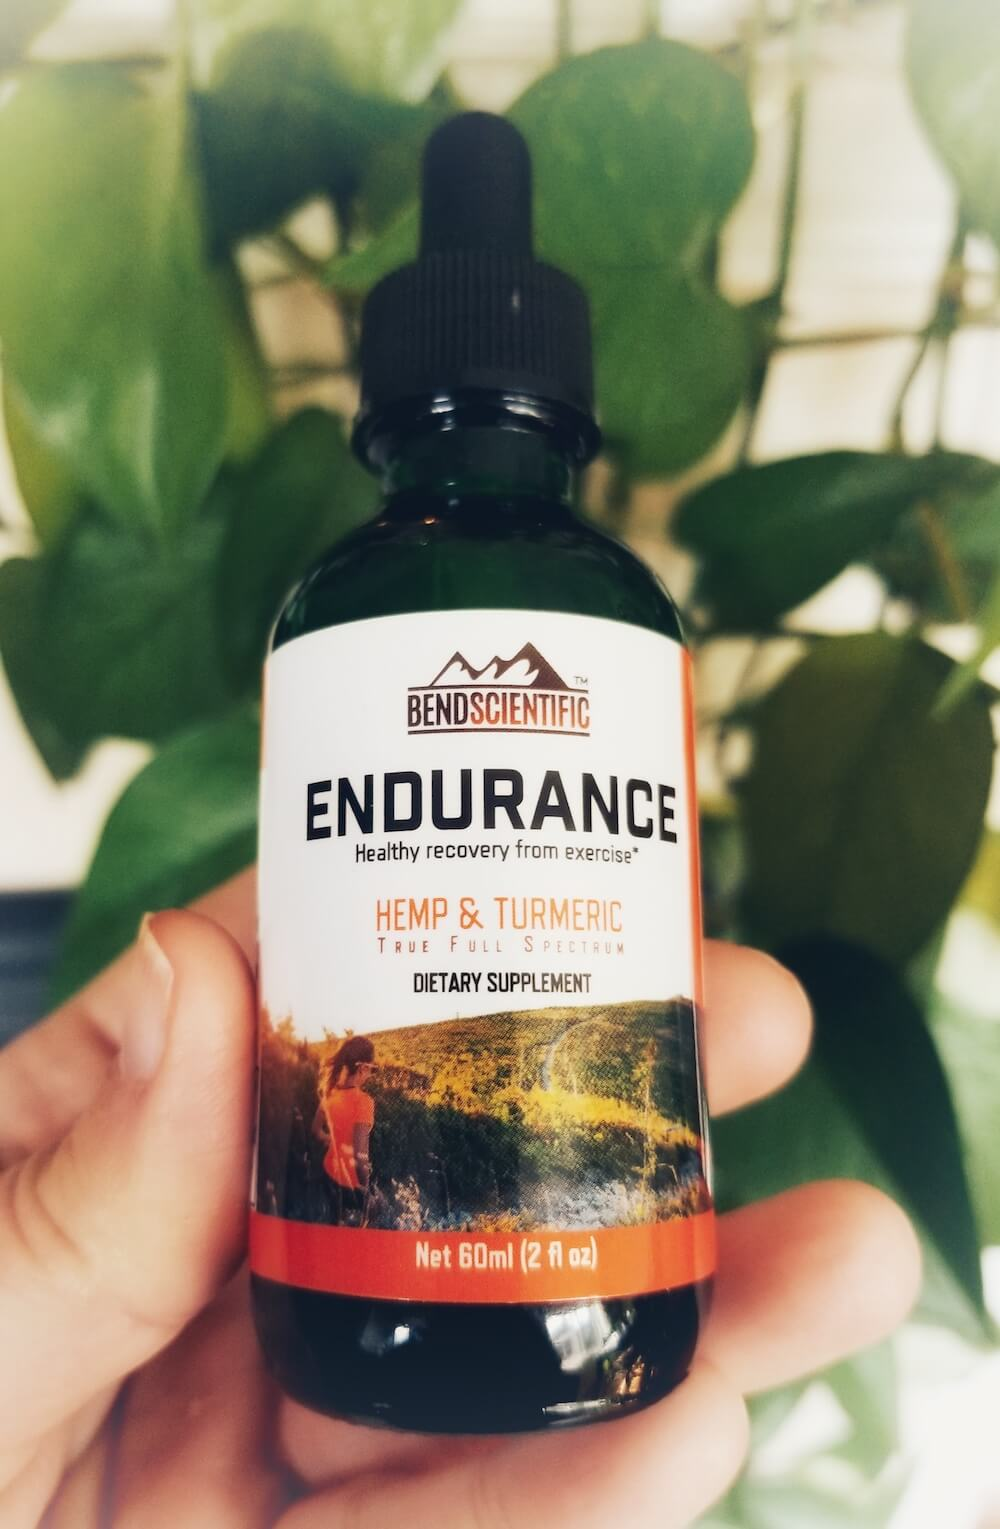 Endurance Hemp Extract Oil from Bend Scientific